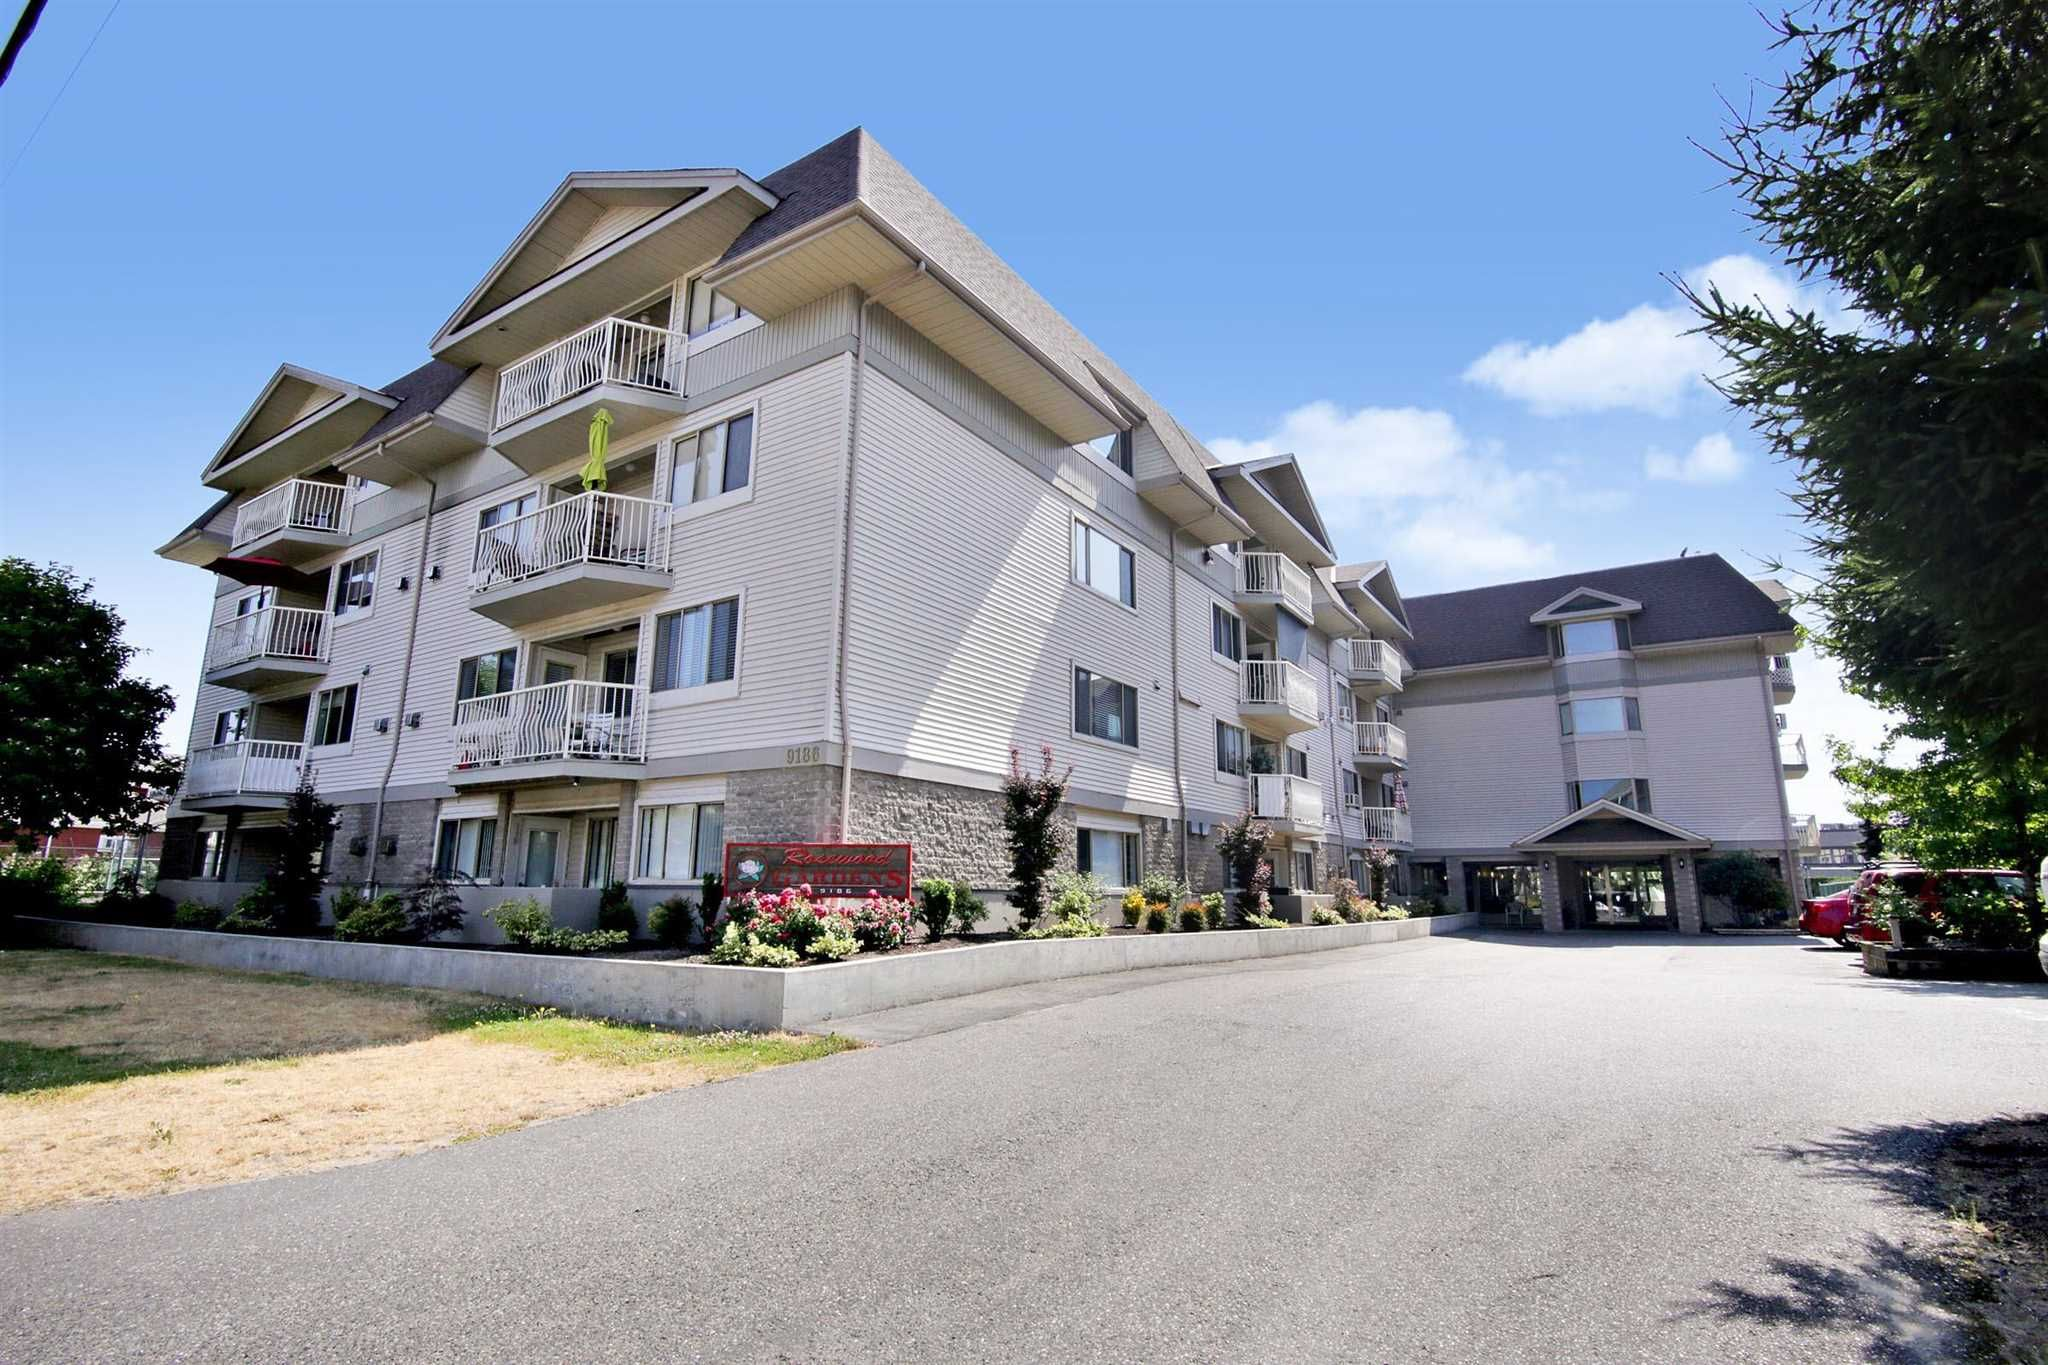 """Main Photo: 311 9186 EDWARD Street in Chilliwack: Chilliwack W Young-Well Condo for sale in """"Rosewood Gardens"""" : MLS®# R2602486"""